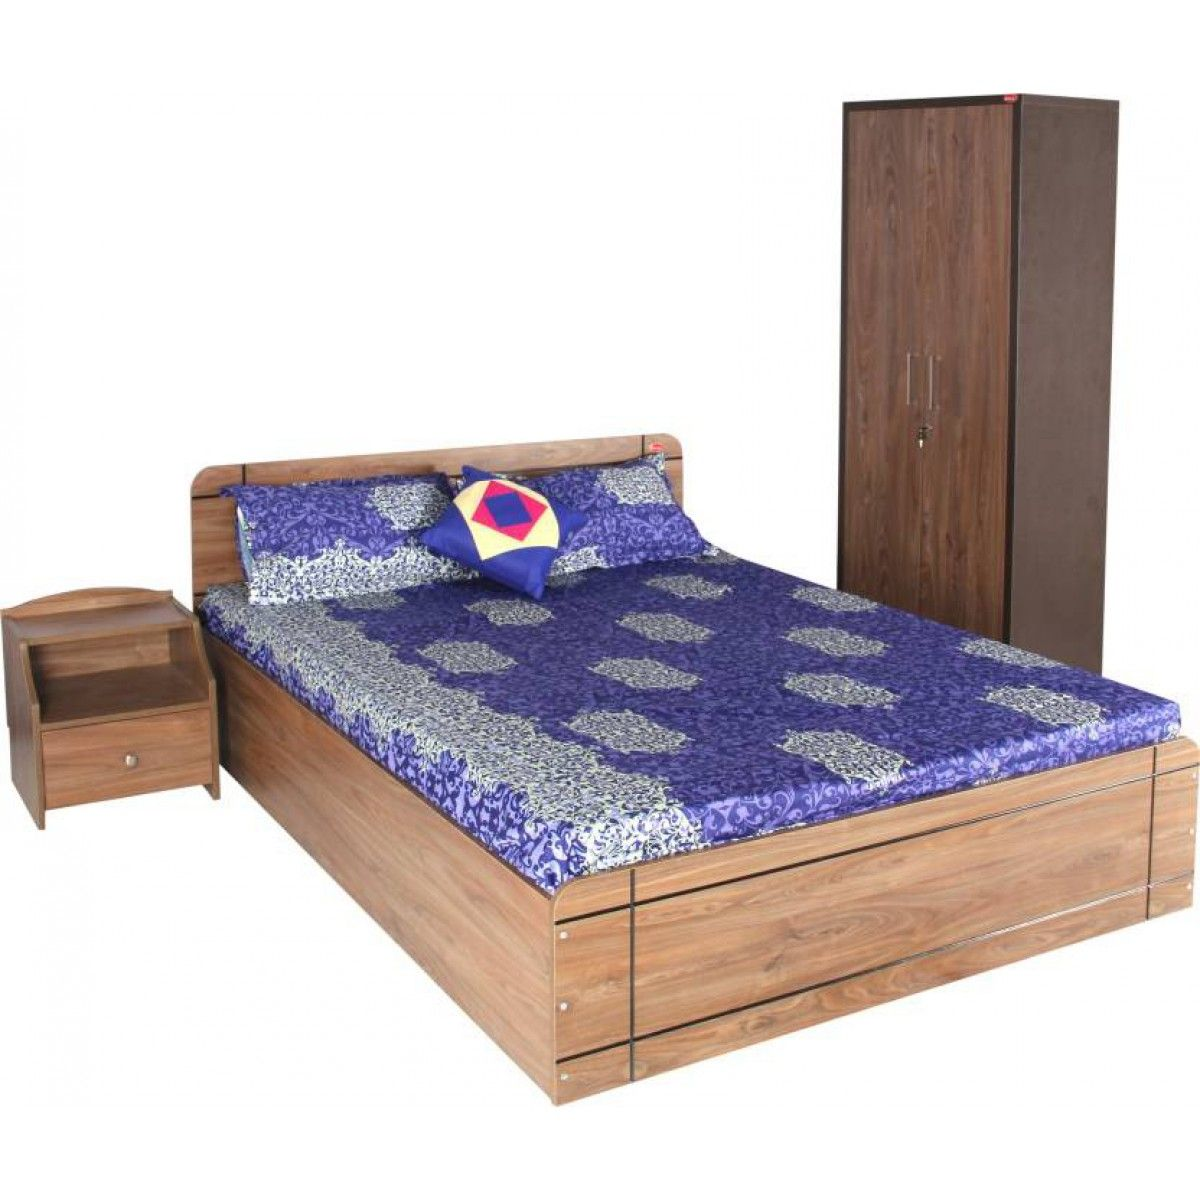 Gorevizon Axis Engineered King Size Bed With Full Storage Walnut Color Bed Furniture Design King Size Bed Designs Bed Design